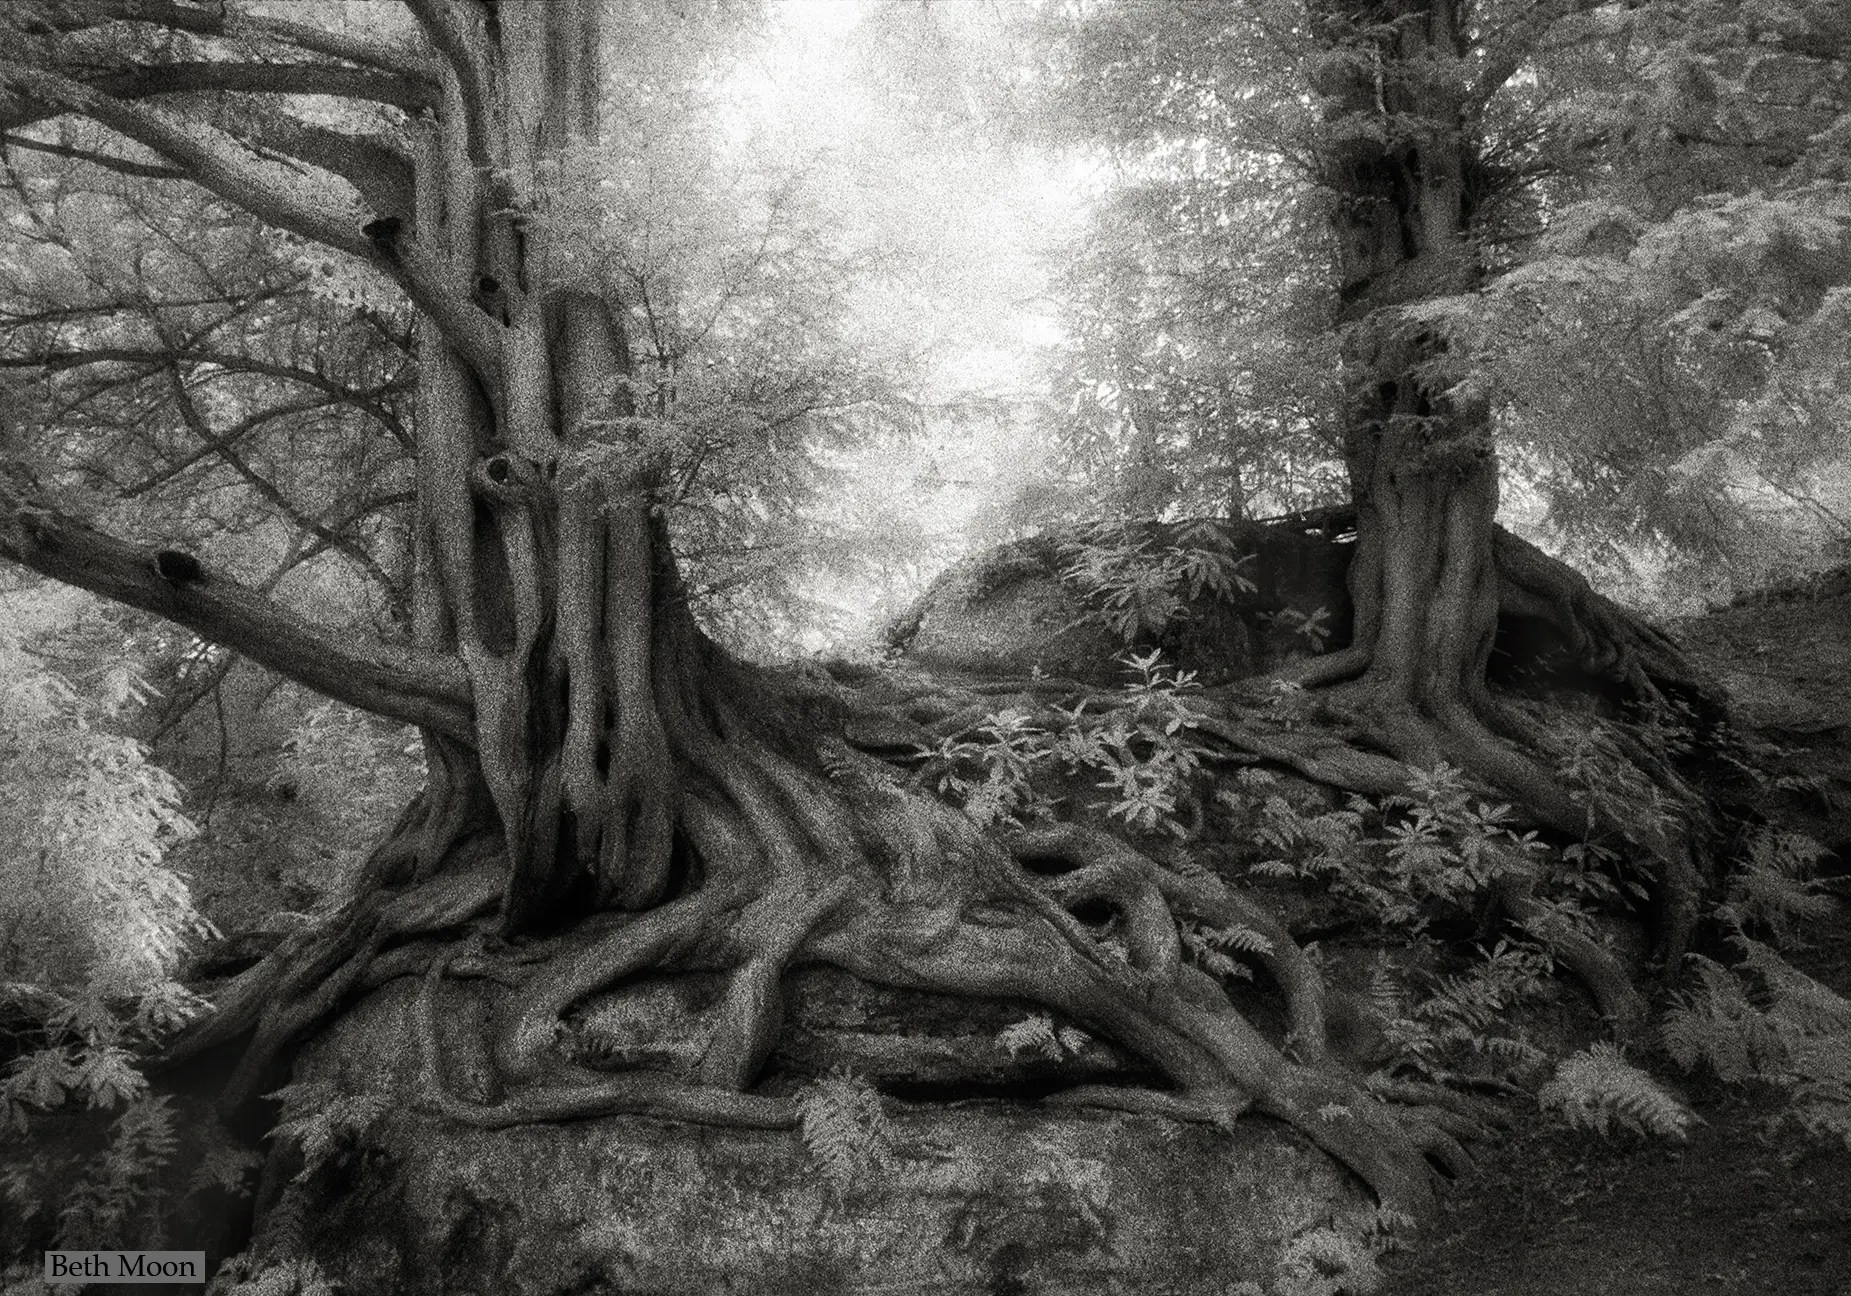 The Yew trees of Wakehurst Place in West Sussex, England, have been recently dated as far as the year 1391. The trees are still growing strong.